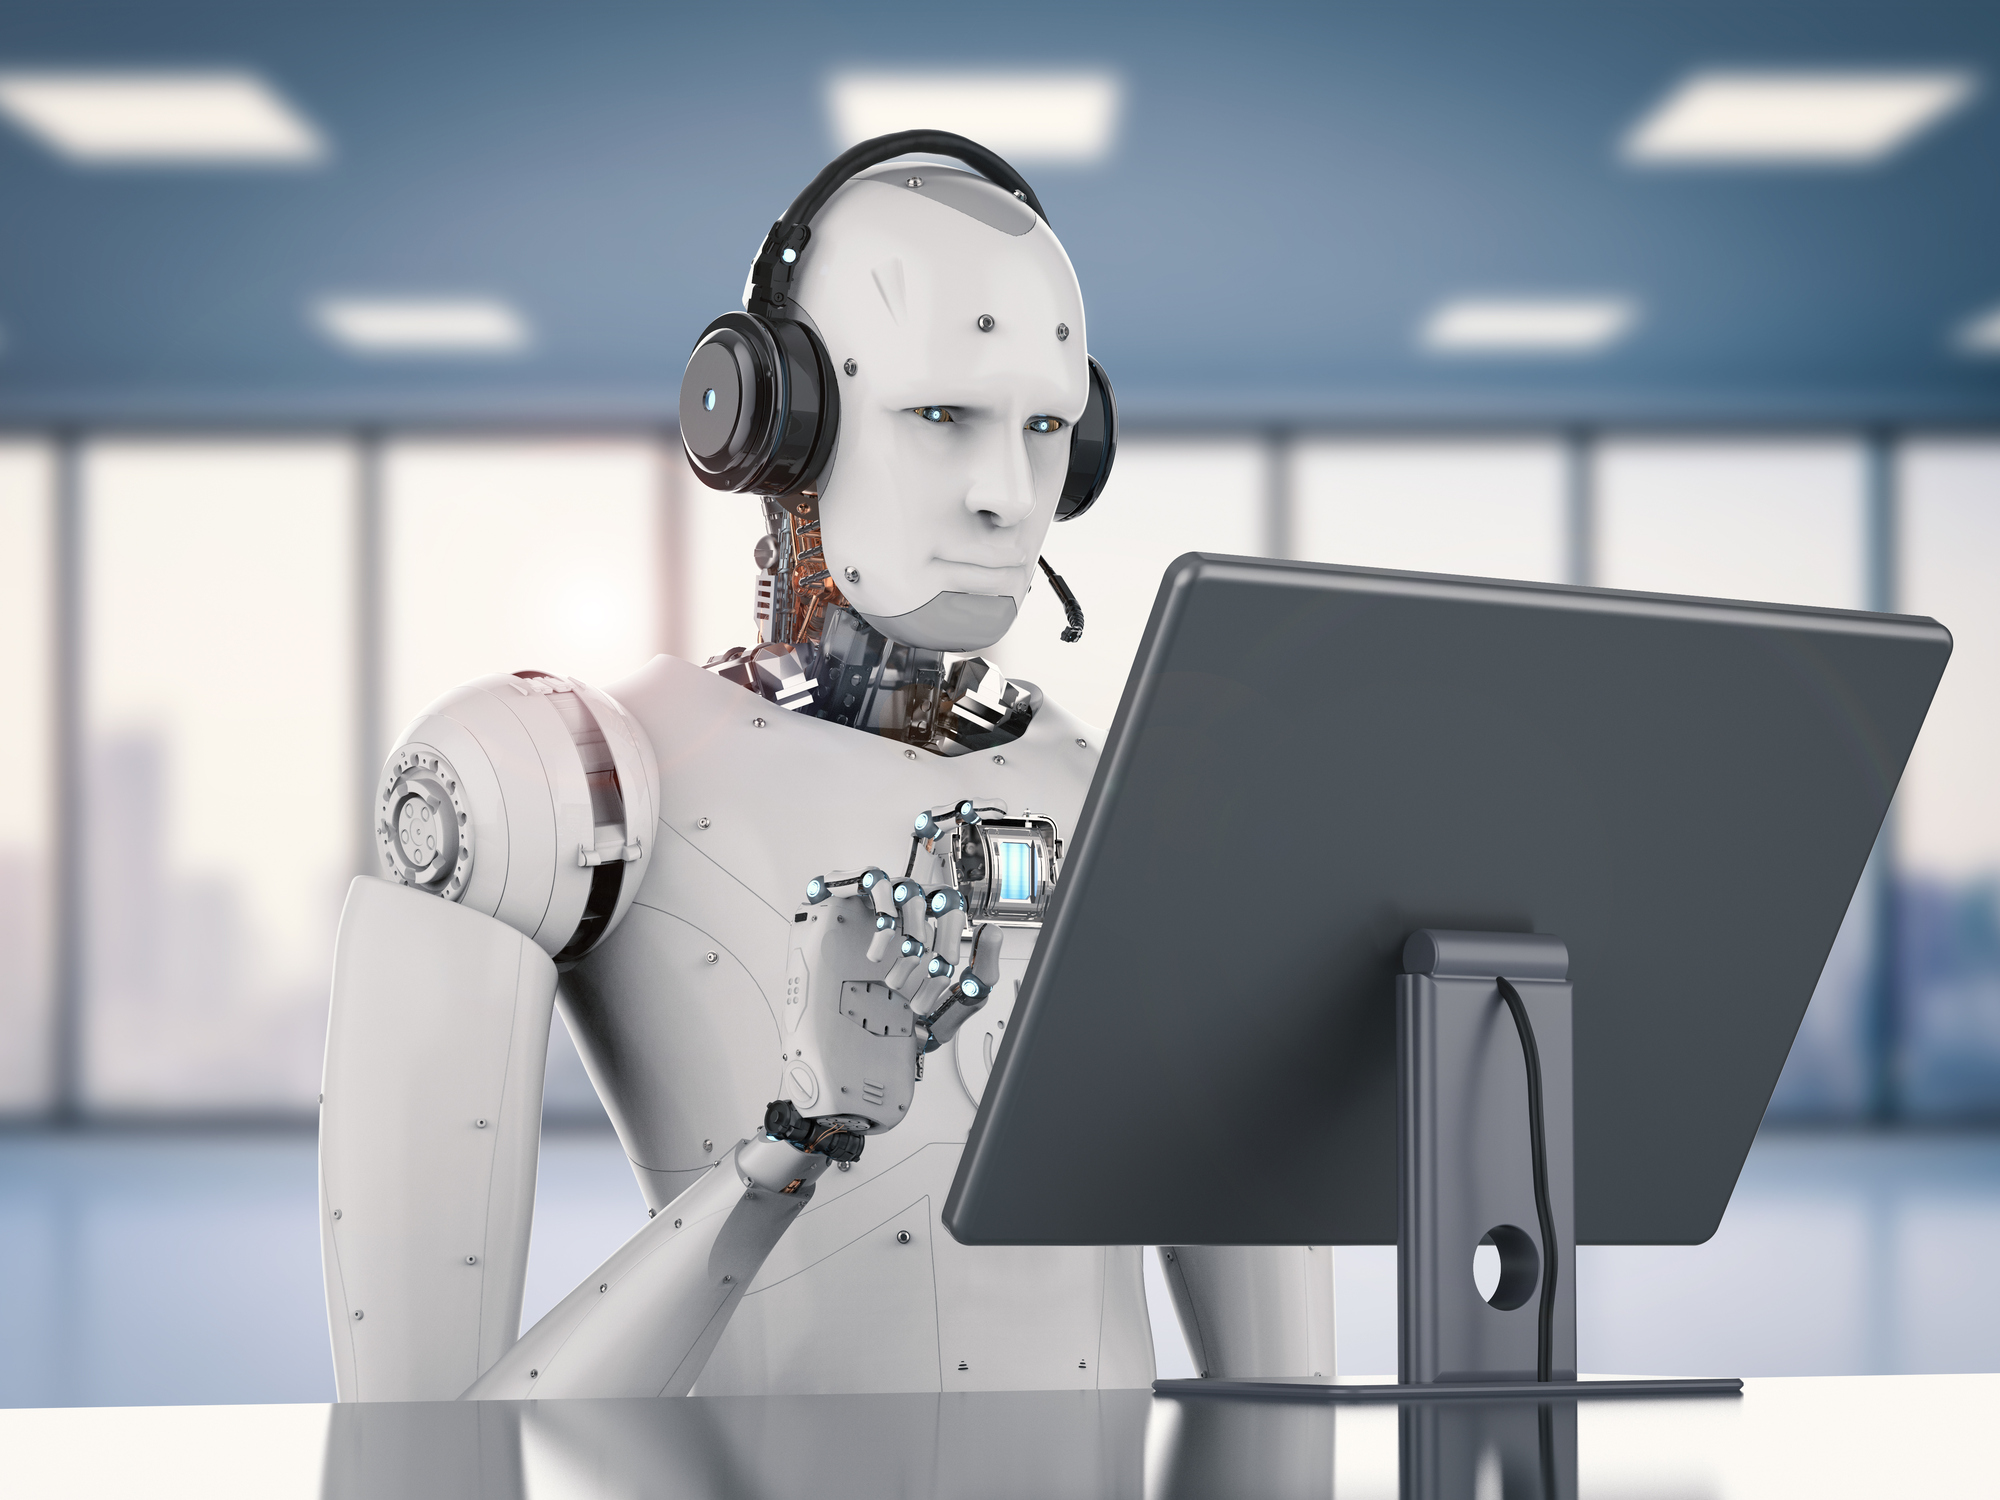 Robotics And Ai Trends To Follow In 2018